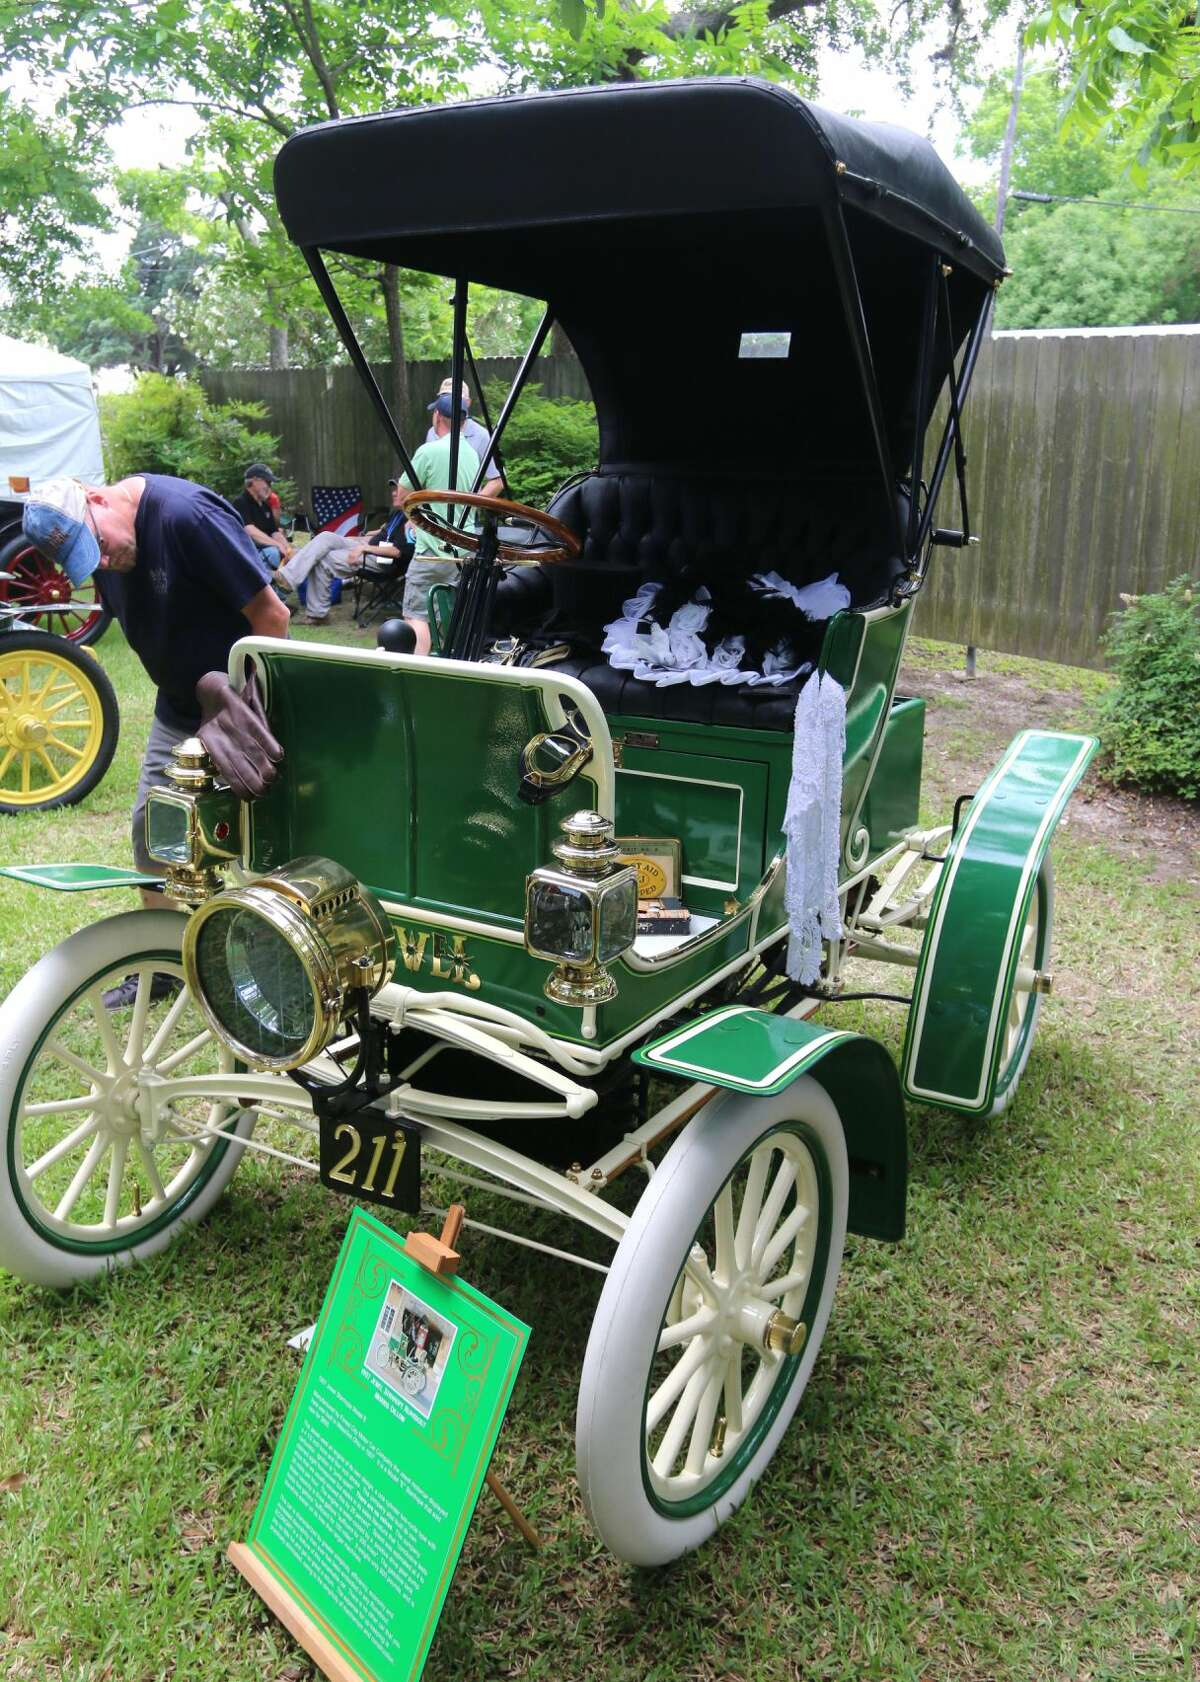 This 1907 Jewel Stanhope Model E was just one of the many cars and boats on display at Keels & Wheels Concours d'Elegance.